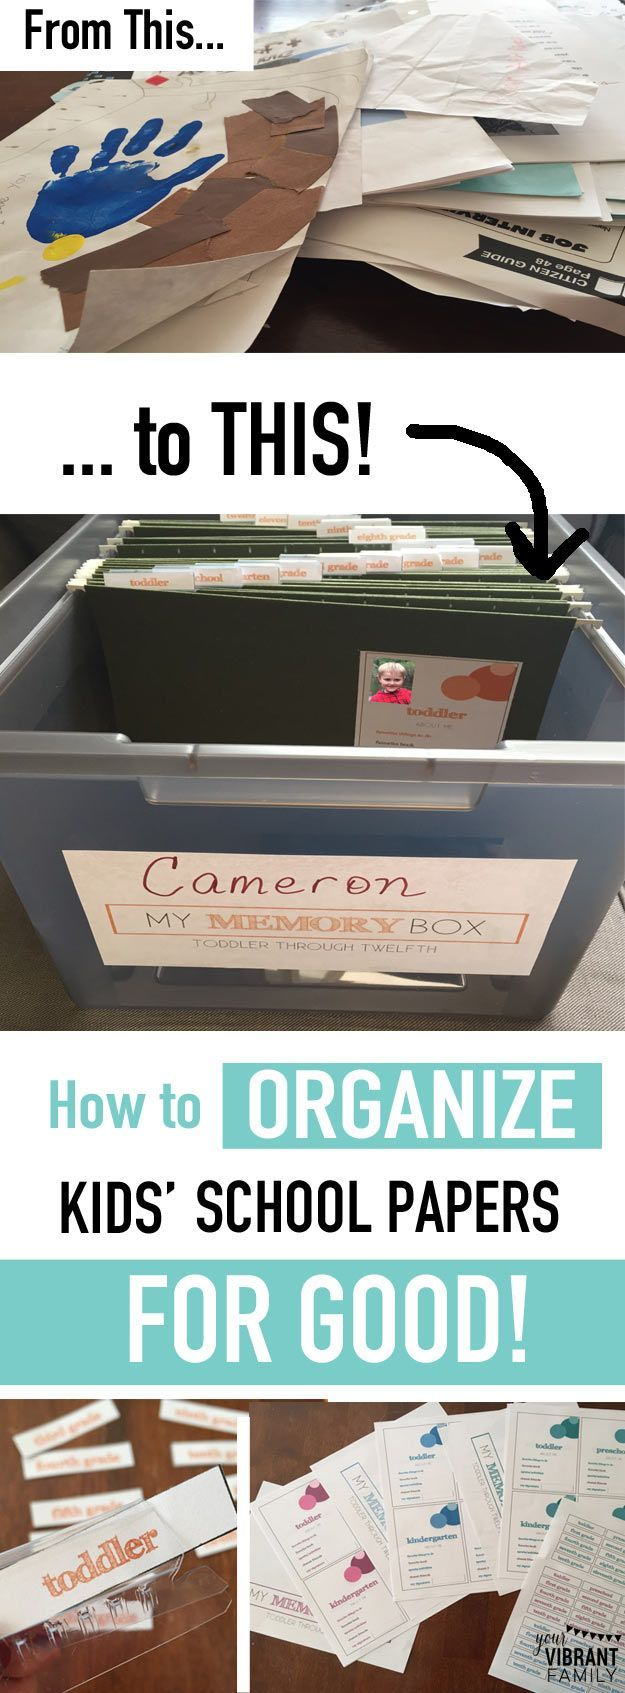 Oh my gosh... YES! Finally a great way to organize kids school papers once and for all-- from their toddler years through twelfth grade! What a great keepsake to pass on to your kids too! Hundreds of moms are loving this amazing method to organize school